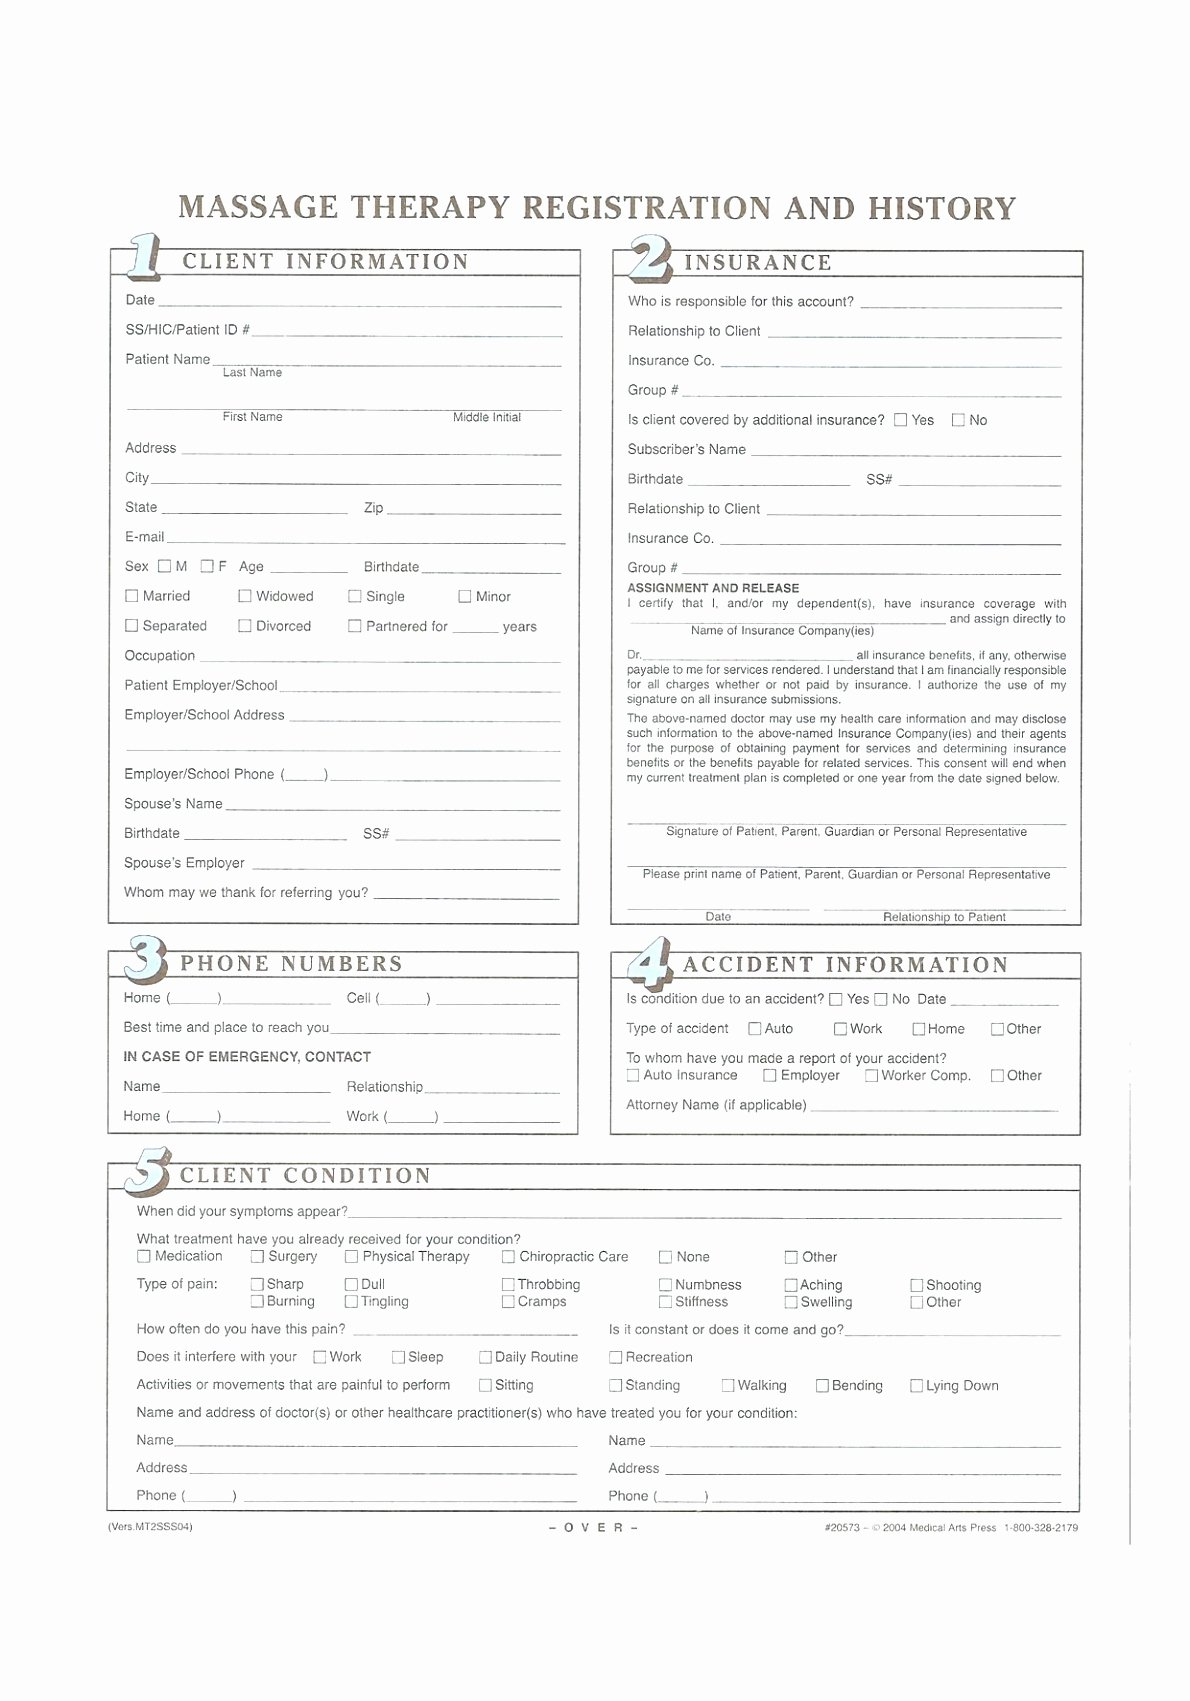 Intake form Template Word Awesome Massage Intake form Template Free Image Collections